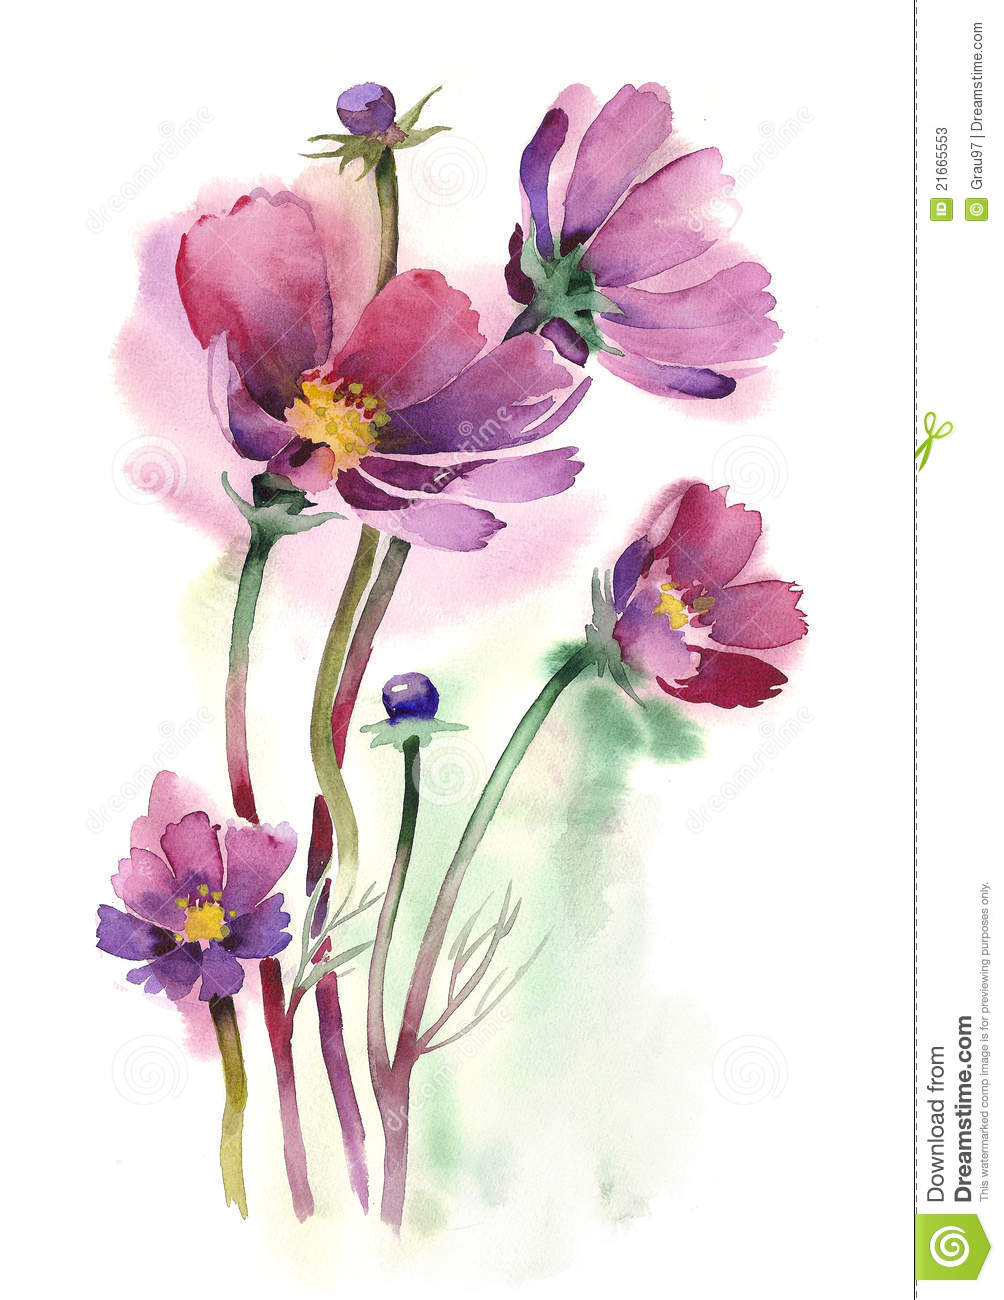 Watercolor cosmos flowers stock photos image 21665553 for Watercolor painting flowers